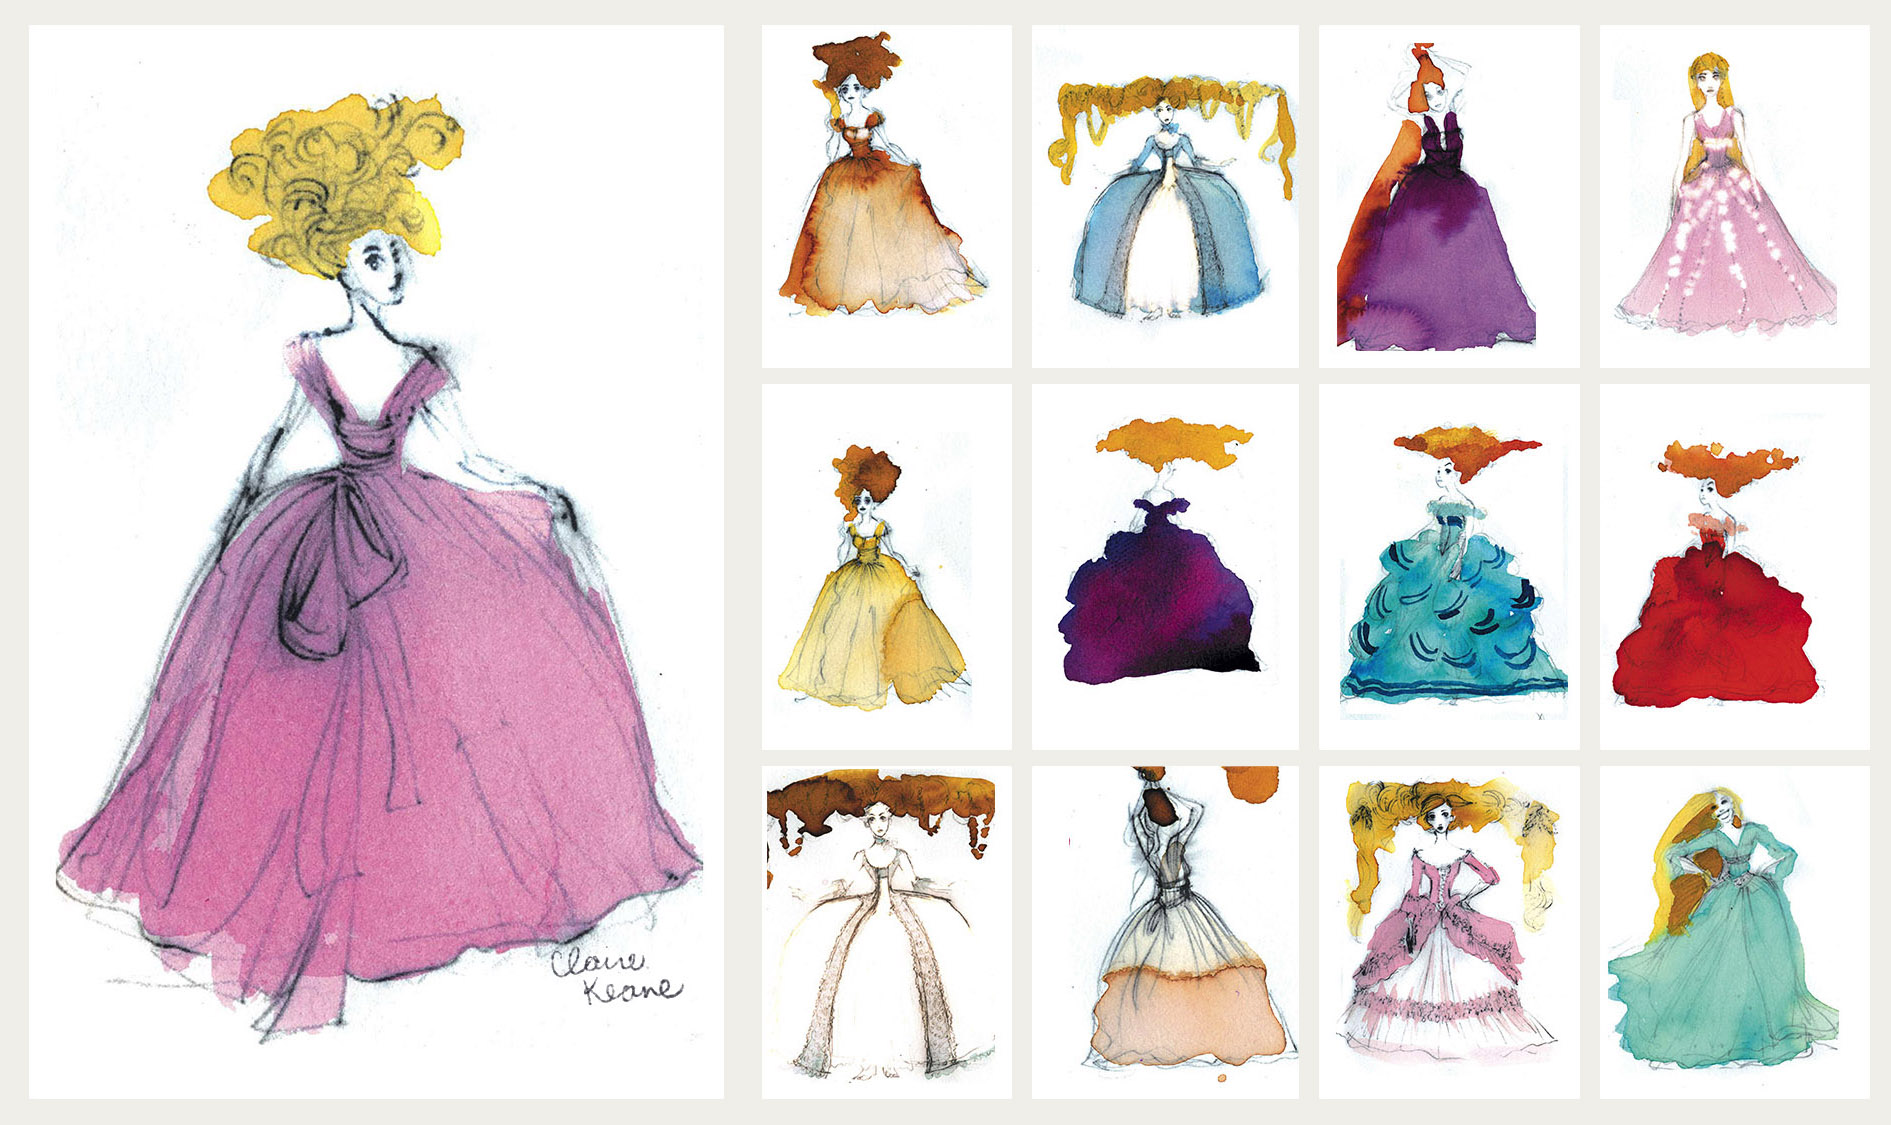 OVER-THE-TOP FAIRYTALE COSTUME DESIGN //VISUAL DEVELOPMENT FOR TANGLED /RAPUNZEL UNBRAIDED